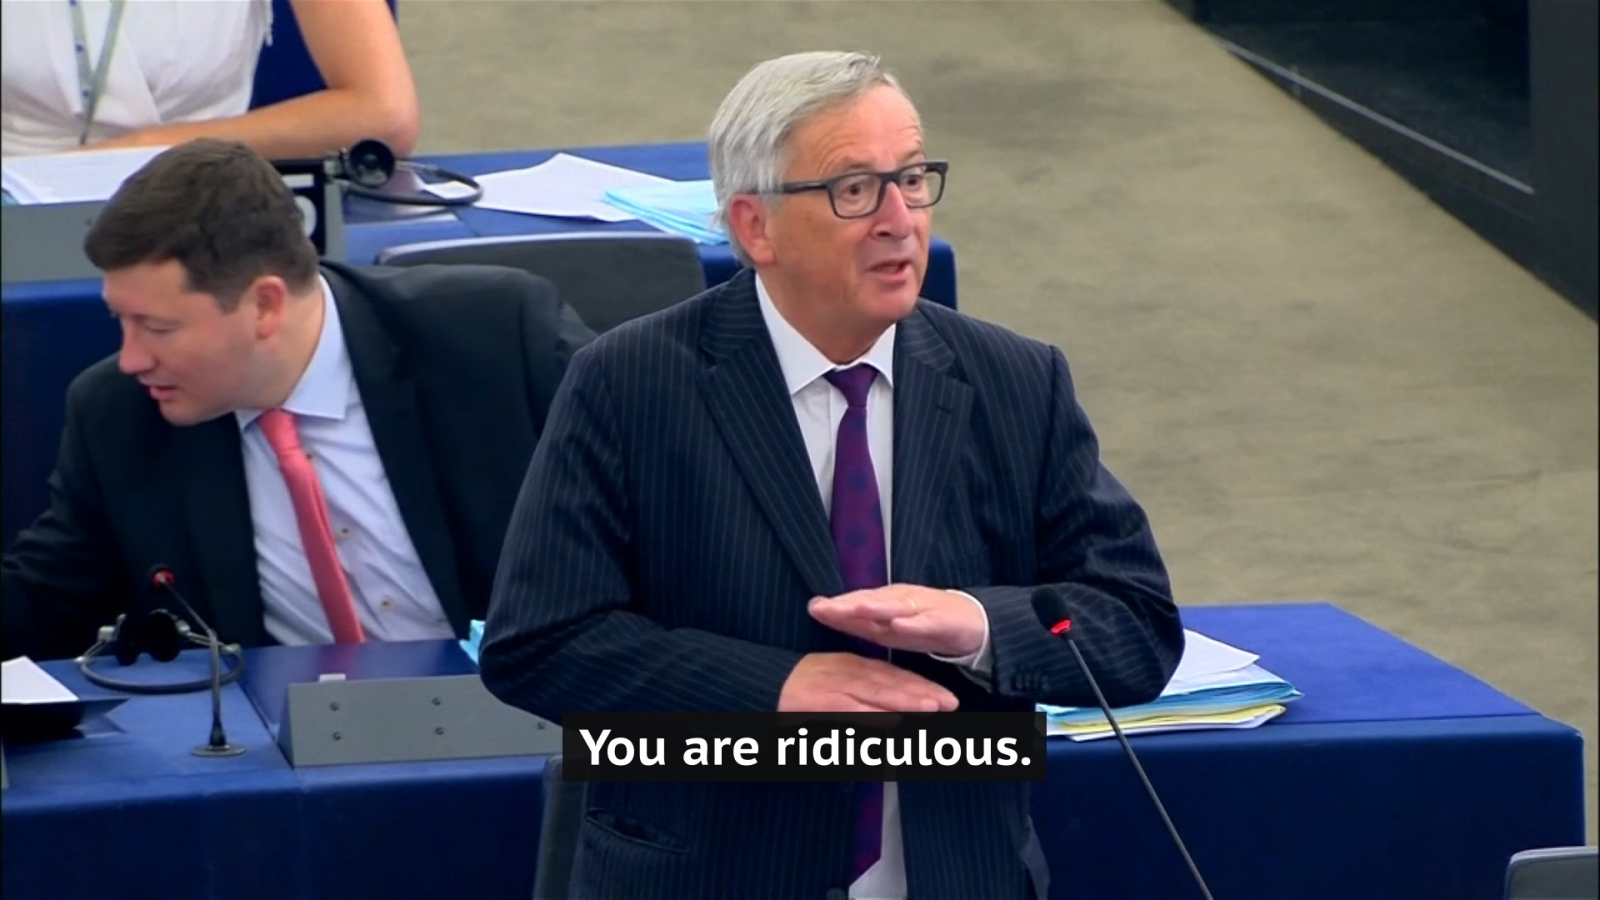 jean-claude-juncker-calls-european-parliament-ridiculous-after-small-number-of-meps-attend-debate